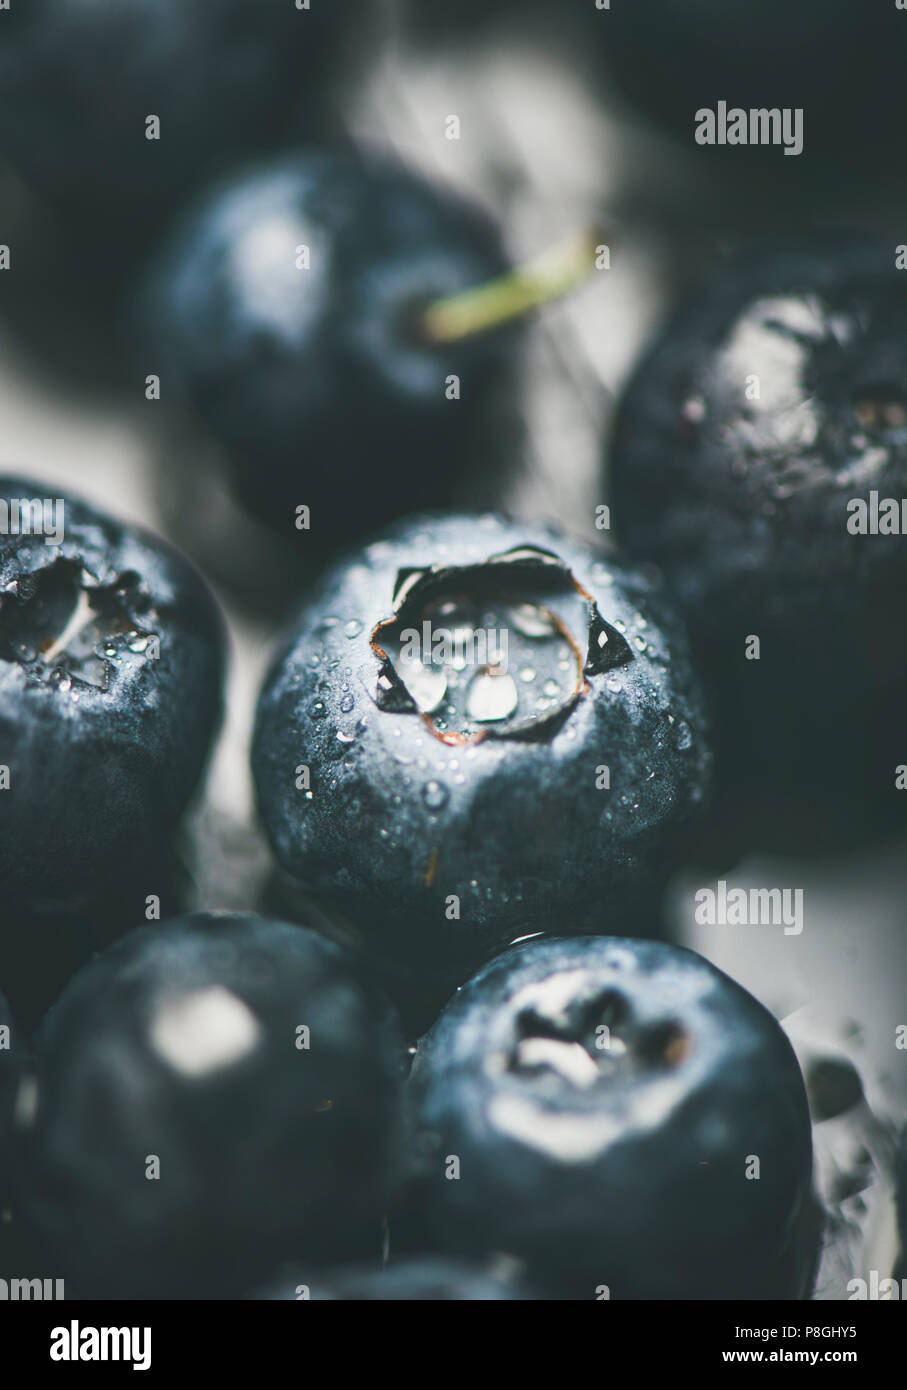 Fresh blueberry texture, wallpaper and background. Wet dark forest blueberries on dark background, selective focus, vertical composition, close-up. Su - Stock Image